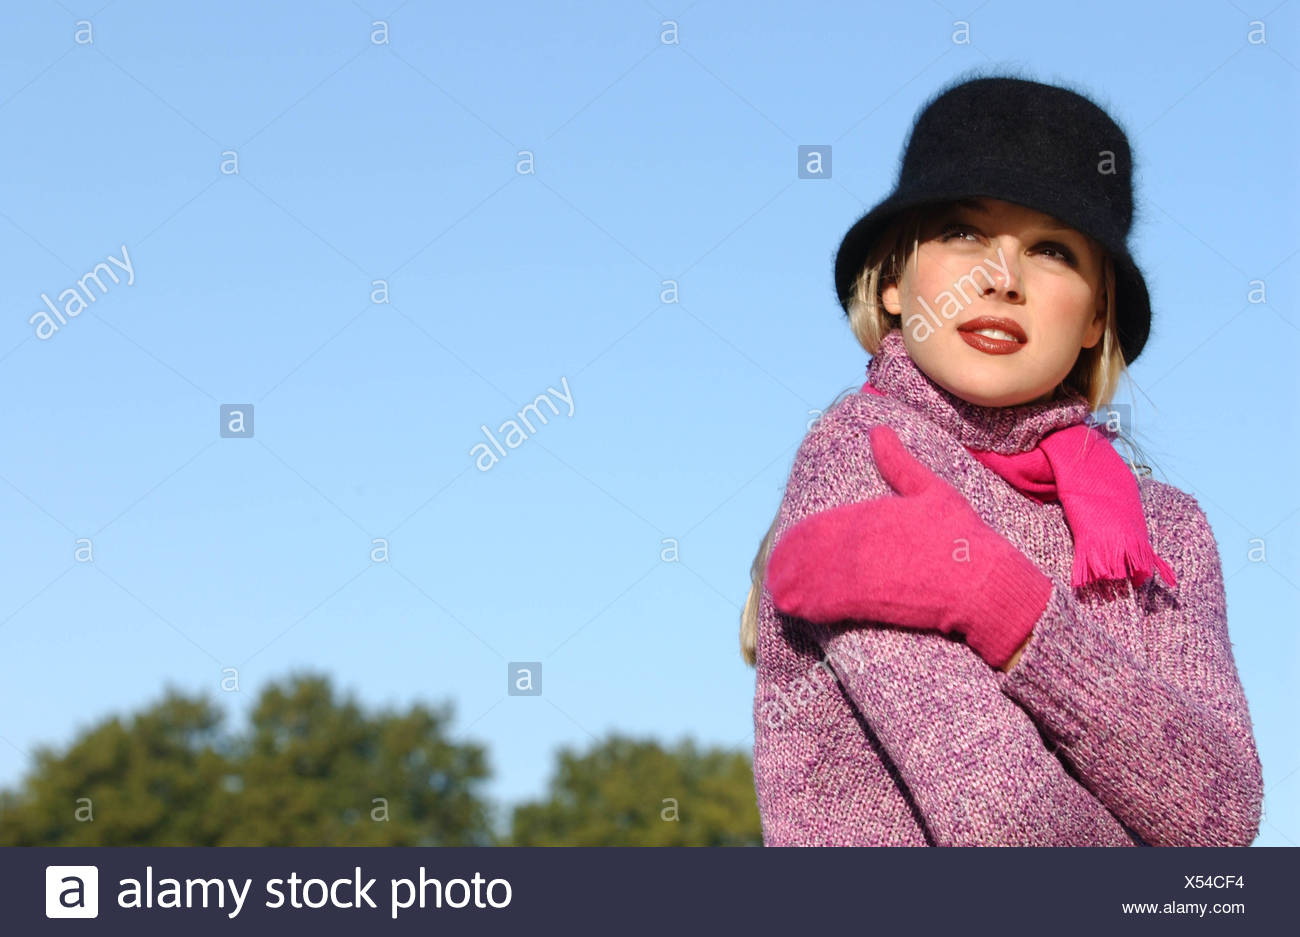 Female long blonde hair brown tones of make up wearing black angora hat purple roll neck jumper bright pink scarf and mittens - Stock Image